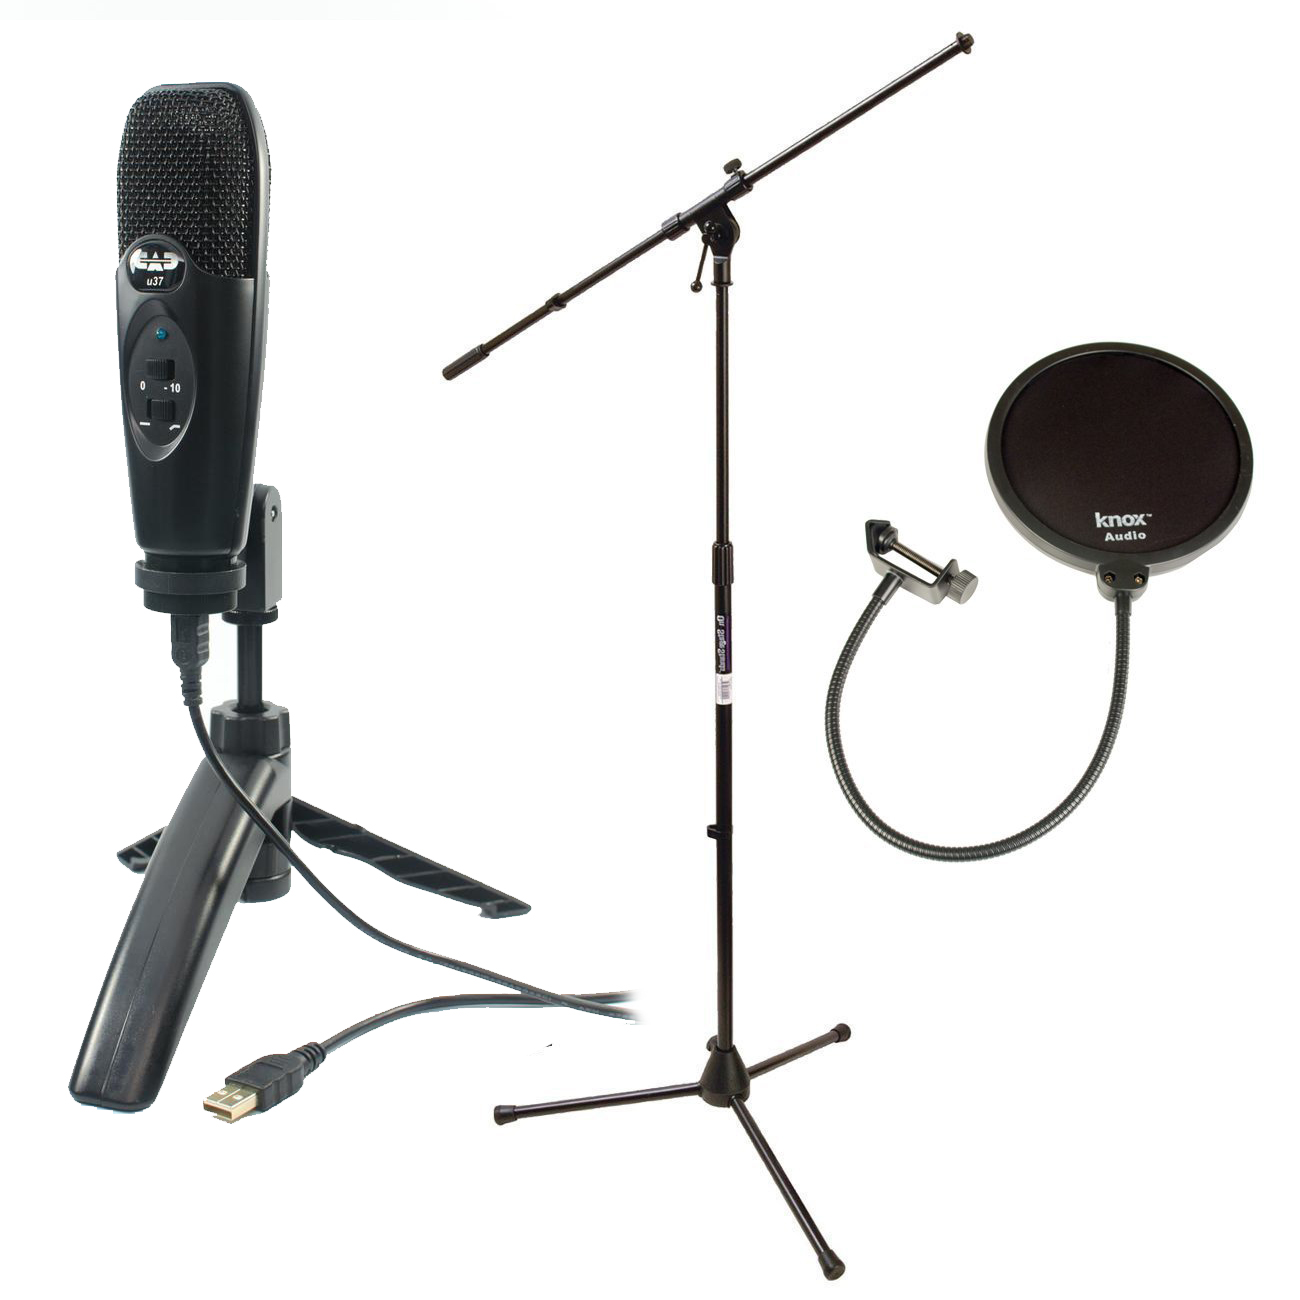 Cad U37 USB Condenser Microphone (Black) with Boom Microphone Stand & Pop Filter by CAD